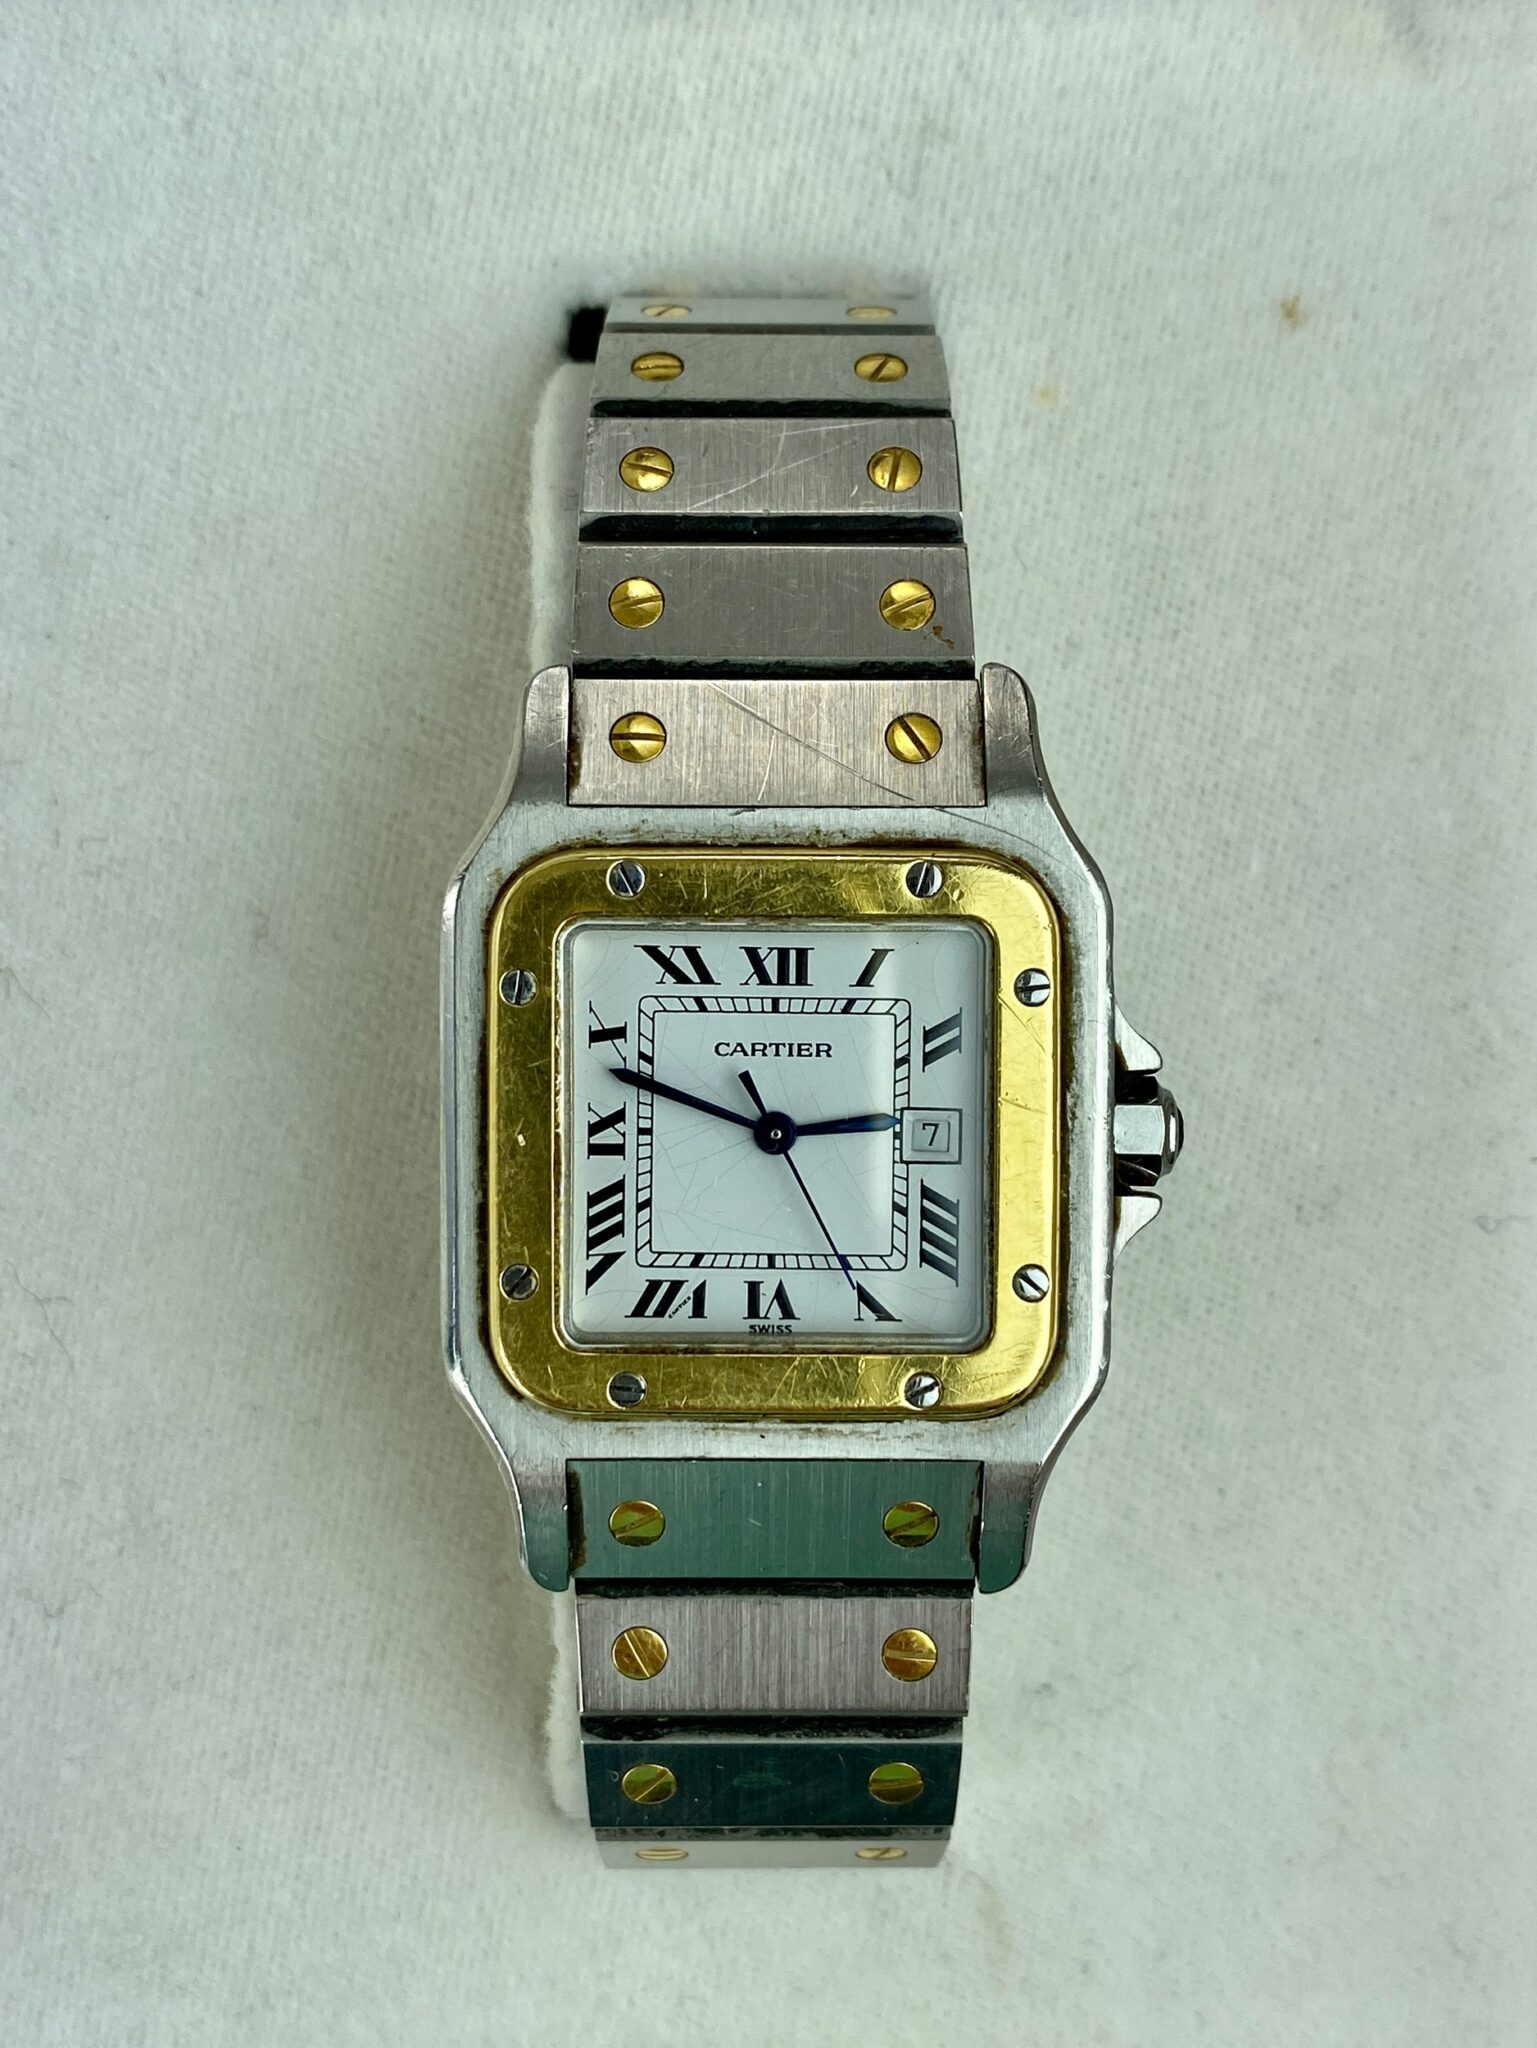 CARTIER MONTRES SANTOS WATCH  | Sold for $2,690